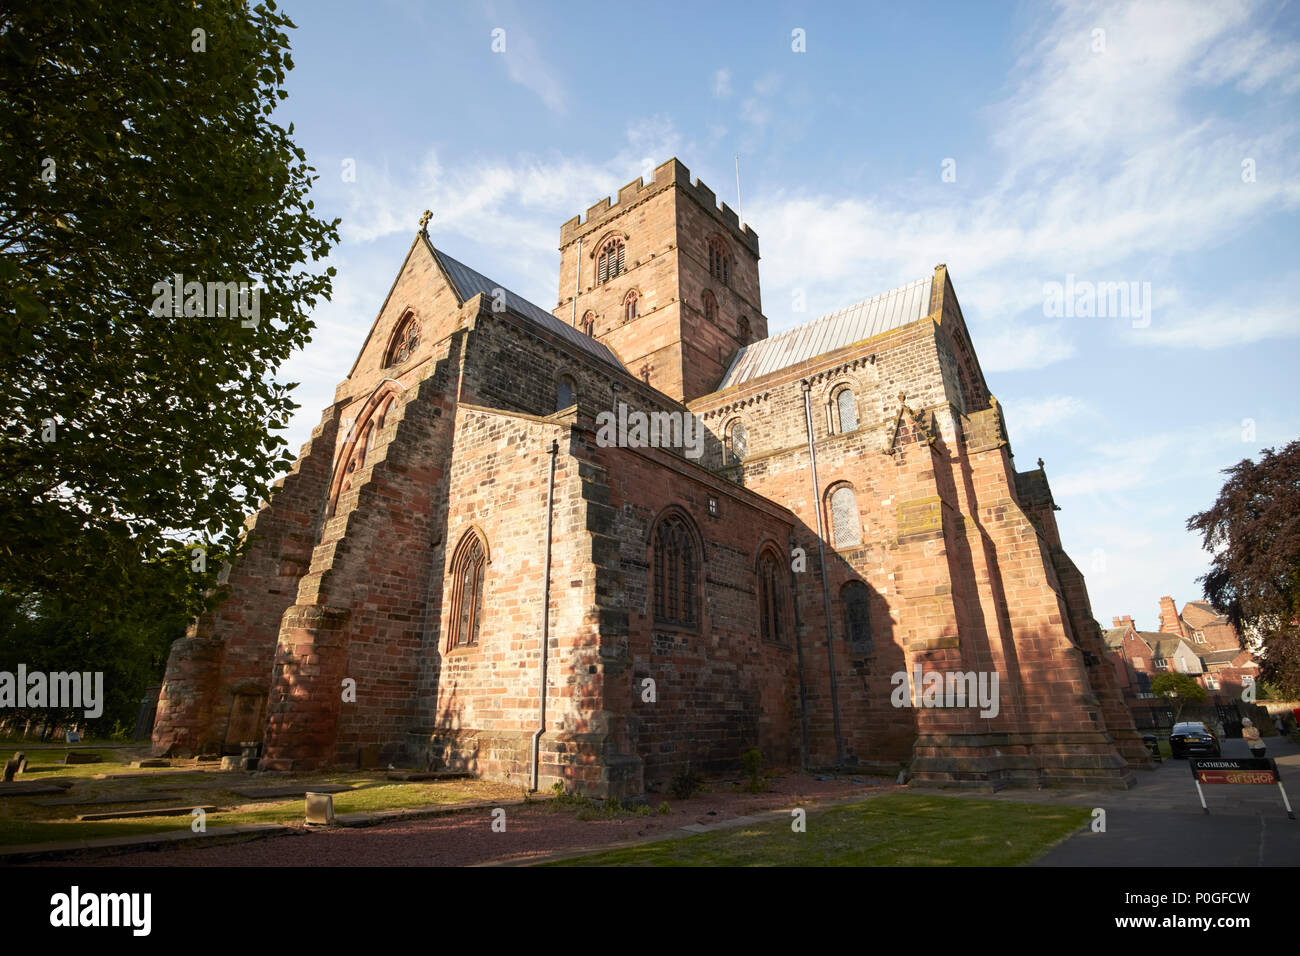 Cathedral Church of the Holy and undivided trinity known as Carlisle cathedral Carlisle Cumbria England UK - Stock Image